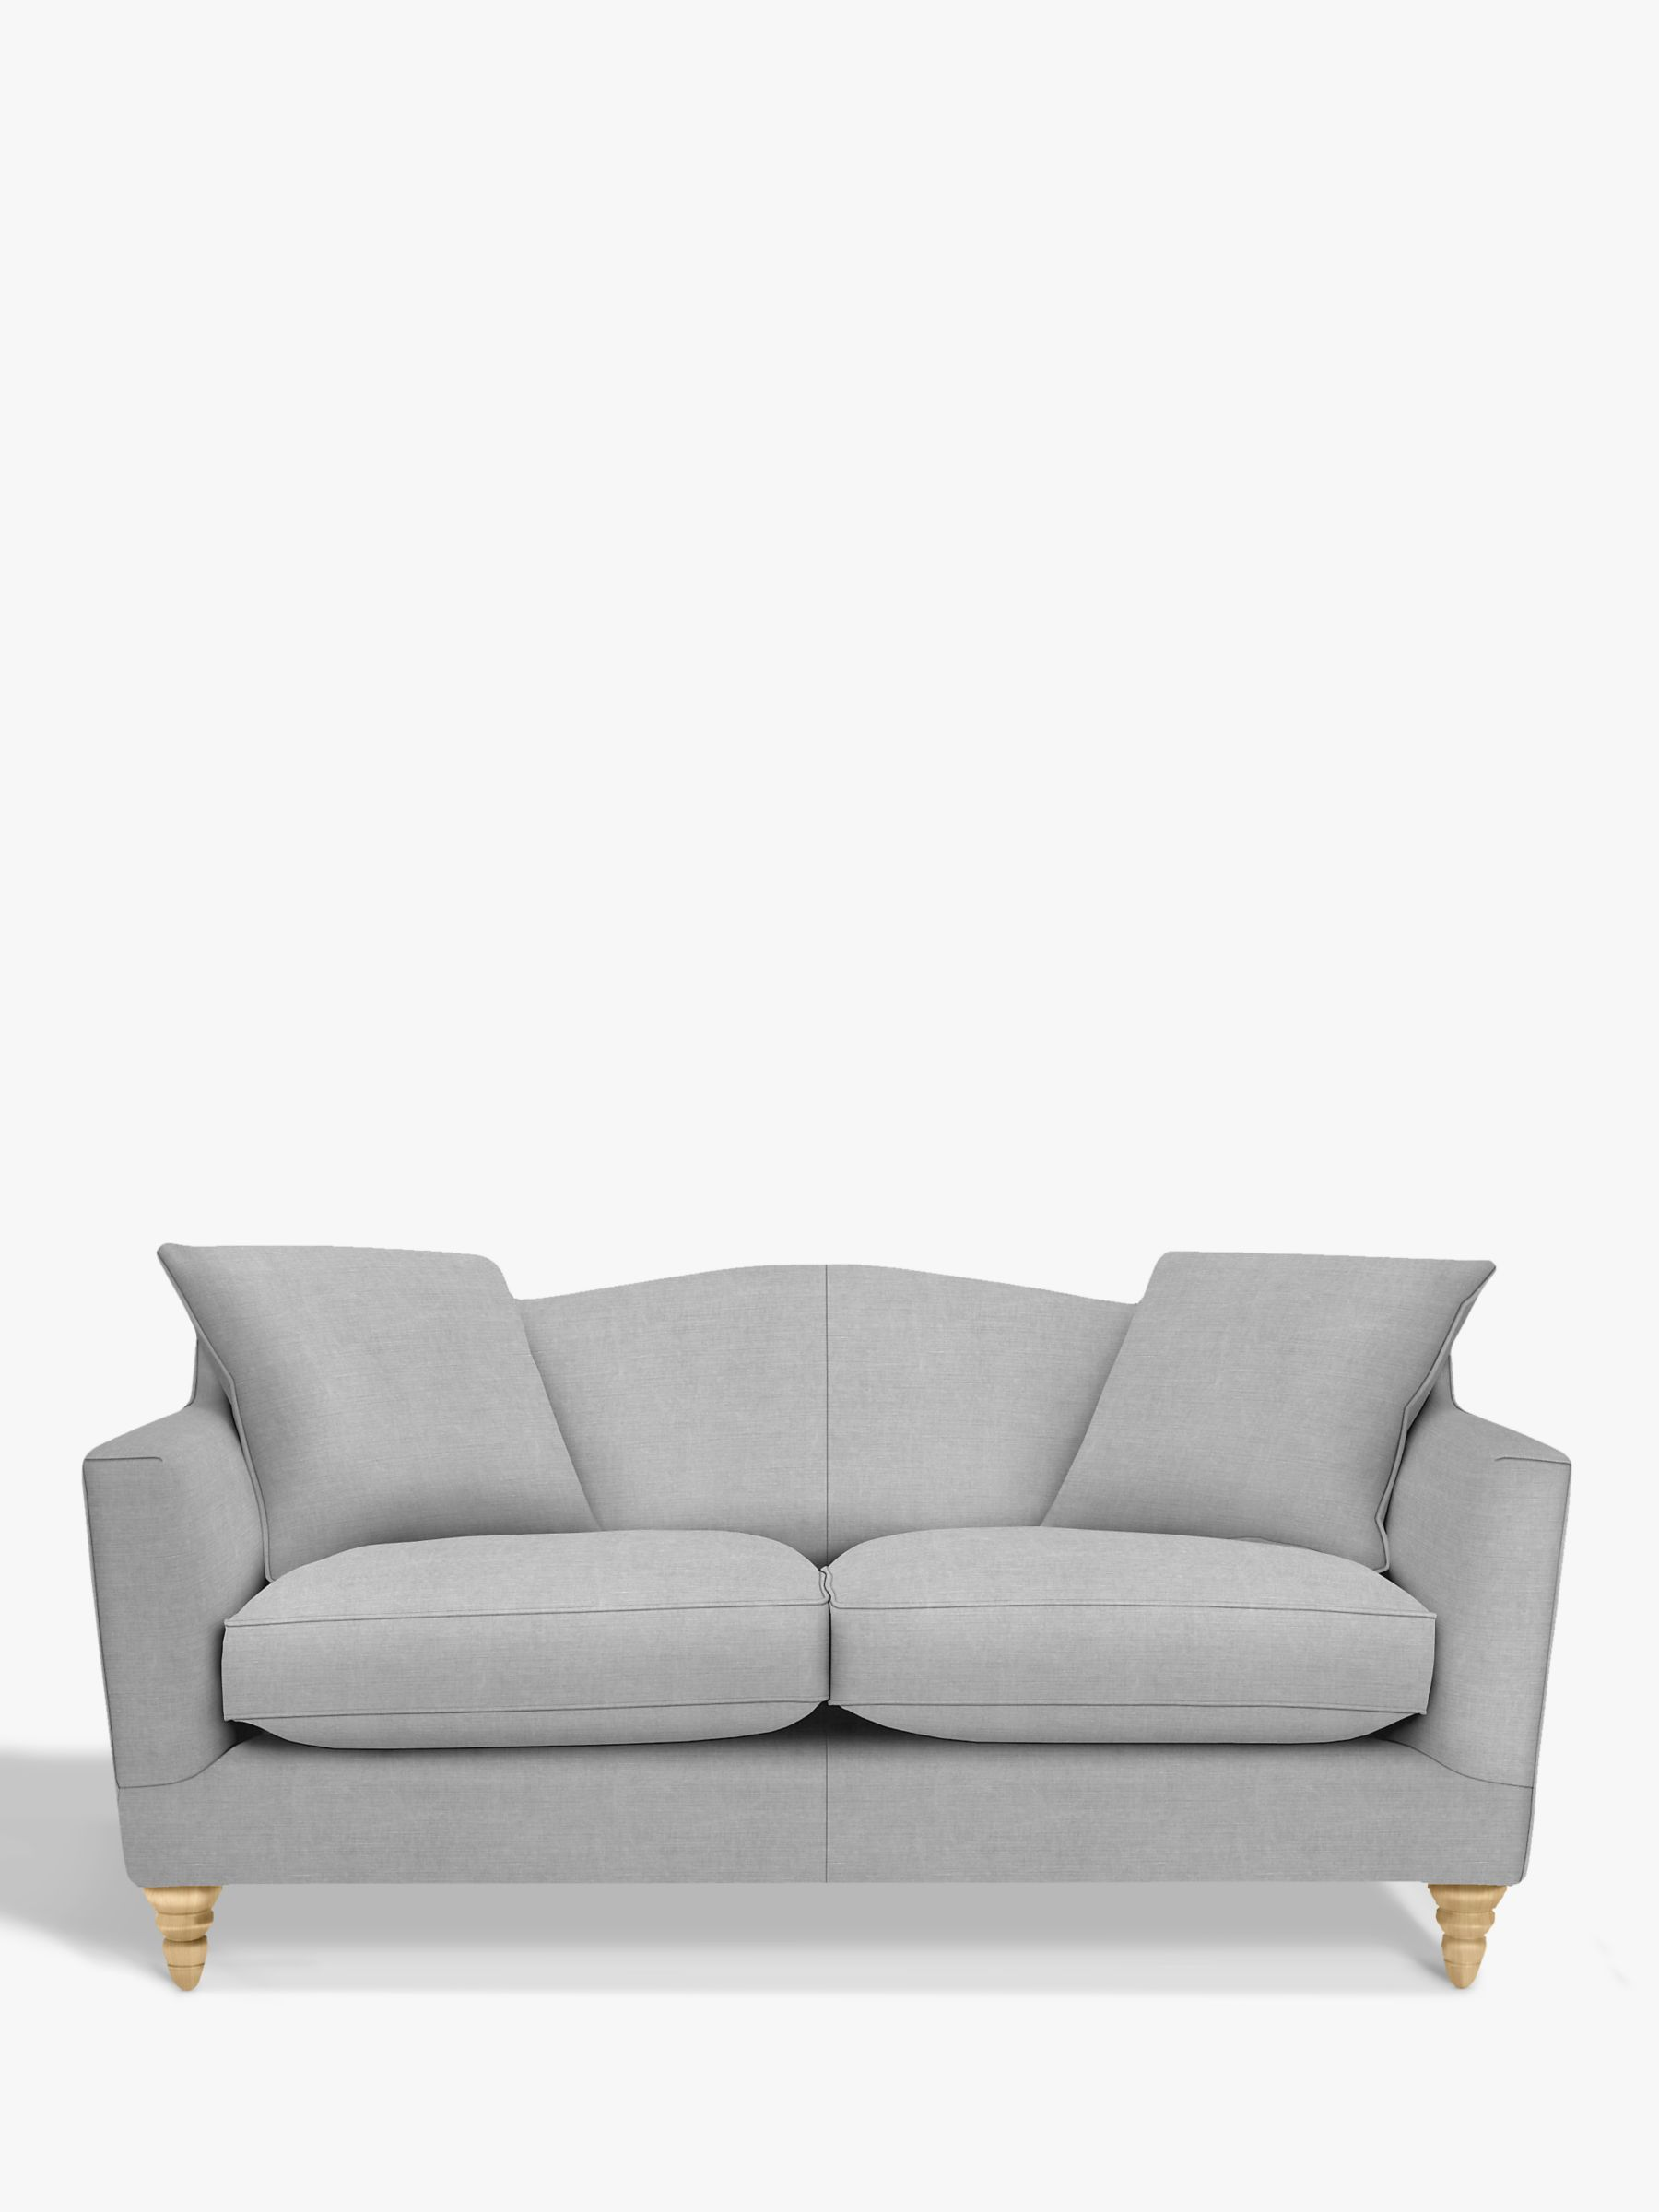 John Lewis Melrose Sofa Croft Collection Melrose Fixed Cover Medium 2 Seater Sofa